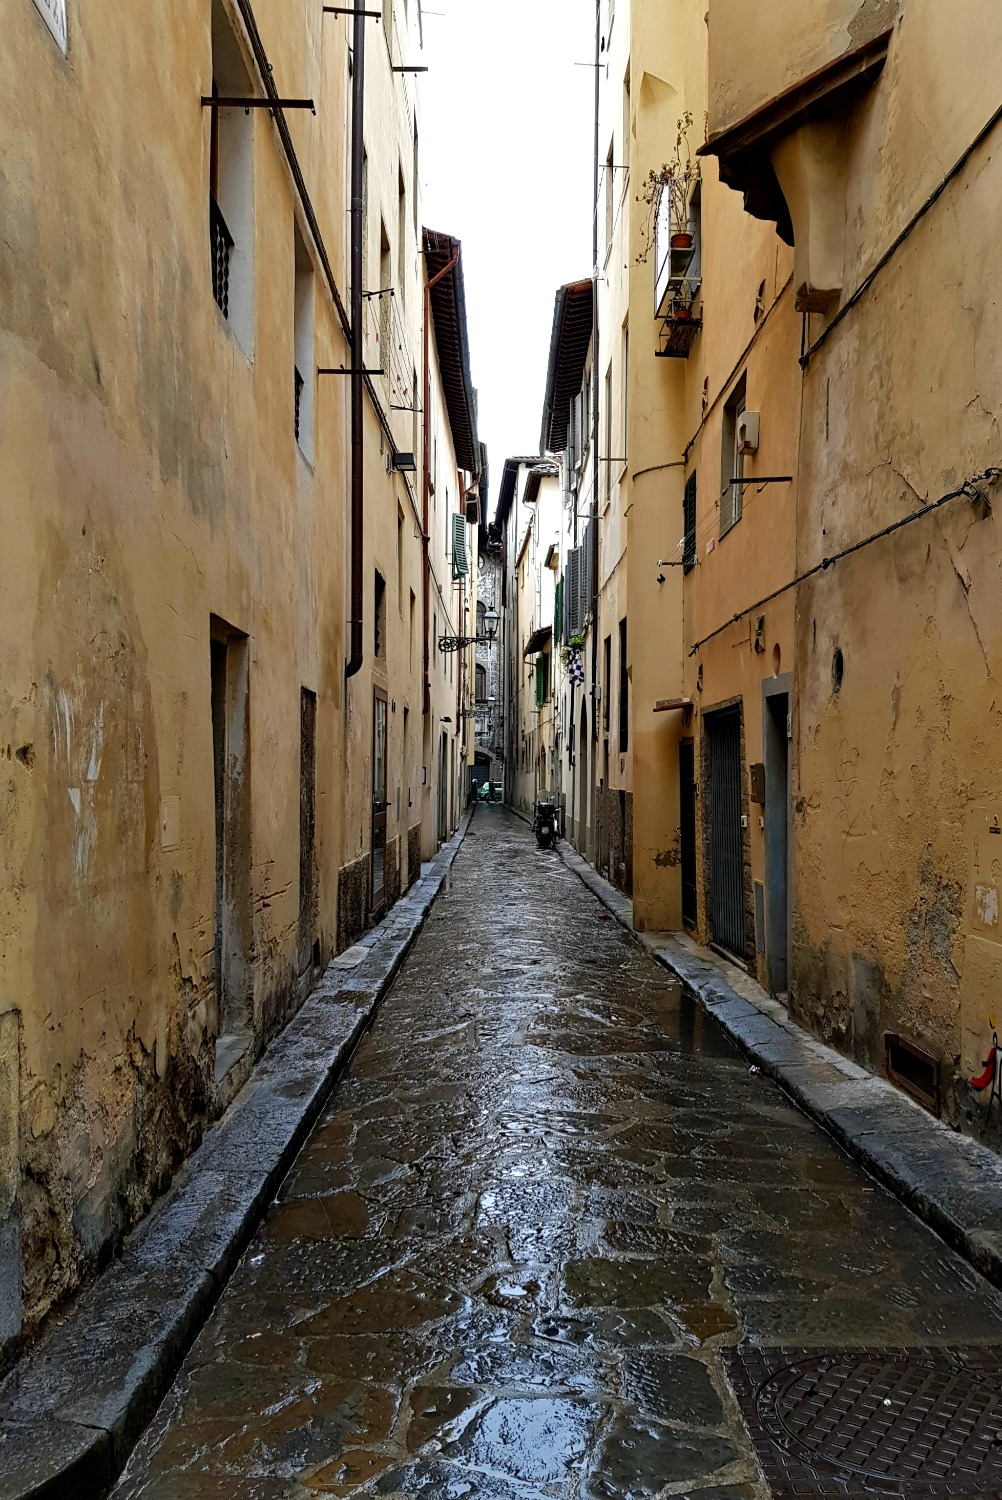 An alleyway in Florence Italy - my Uffizi tour with kids and gelato making day in Florence